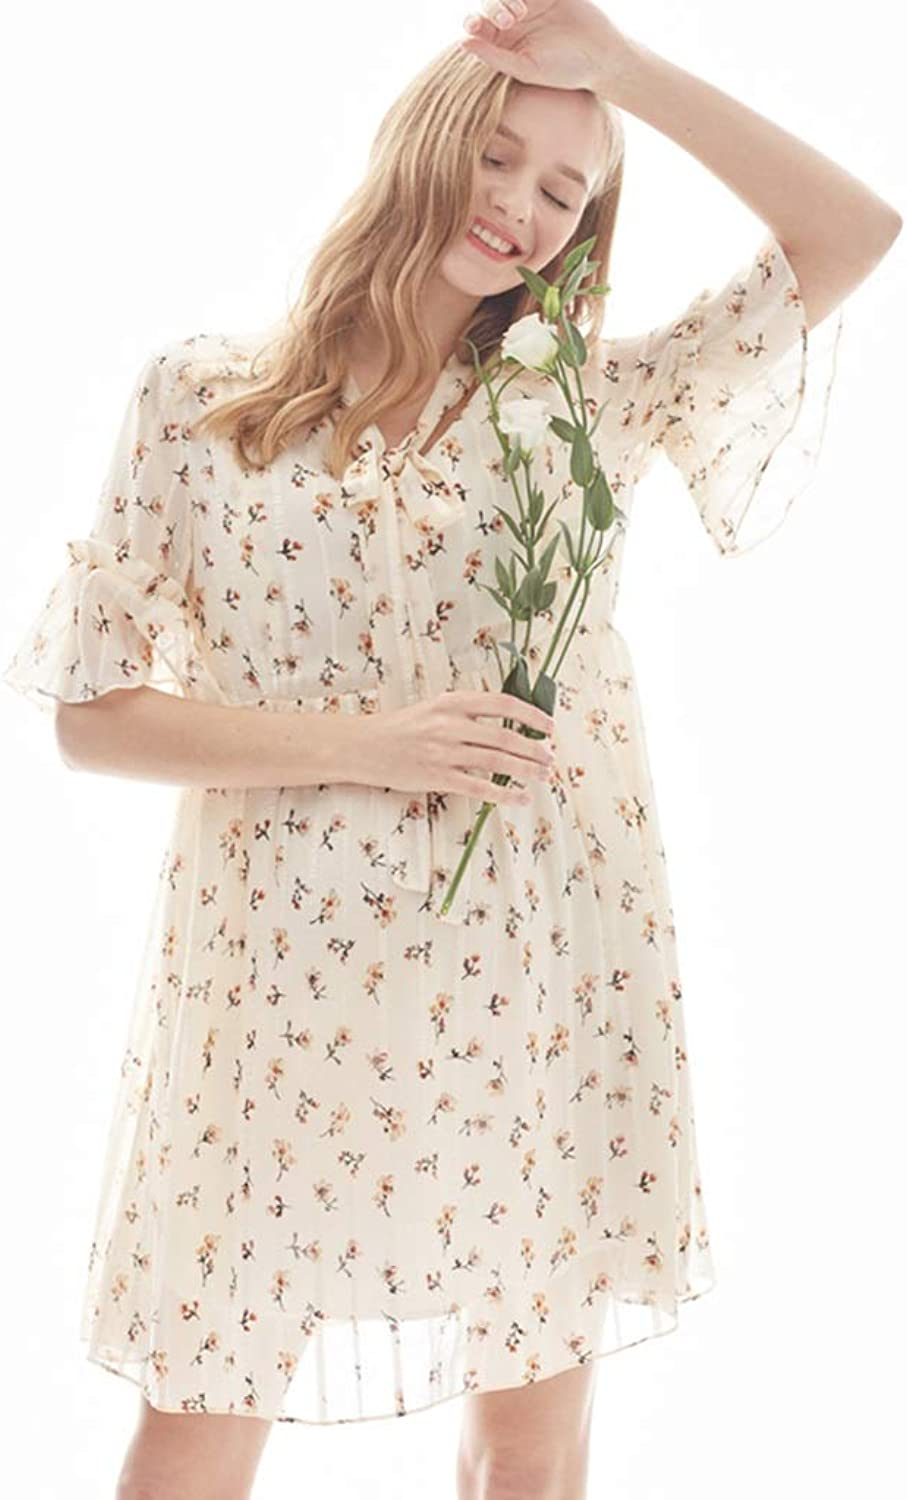 Casual Breastfeeding Dress Short Sleeves Dress Summer Lace Skirt Maternity Floral Skirt Wear to Work (color   Beige, Size   XL)